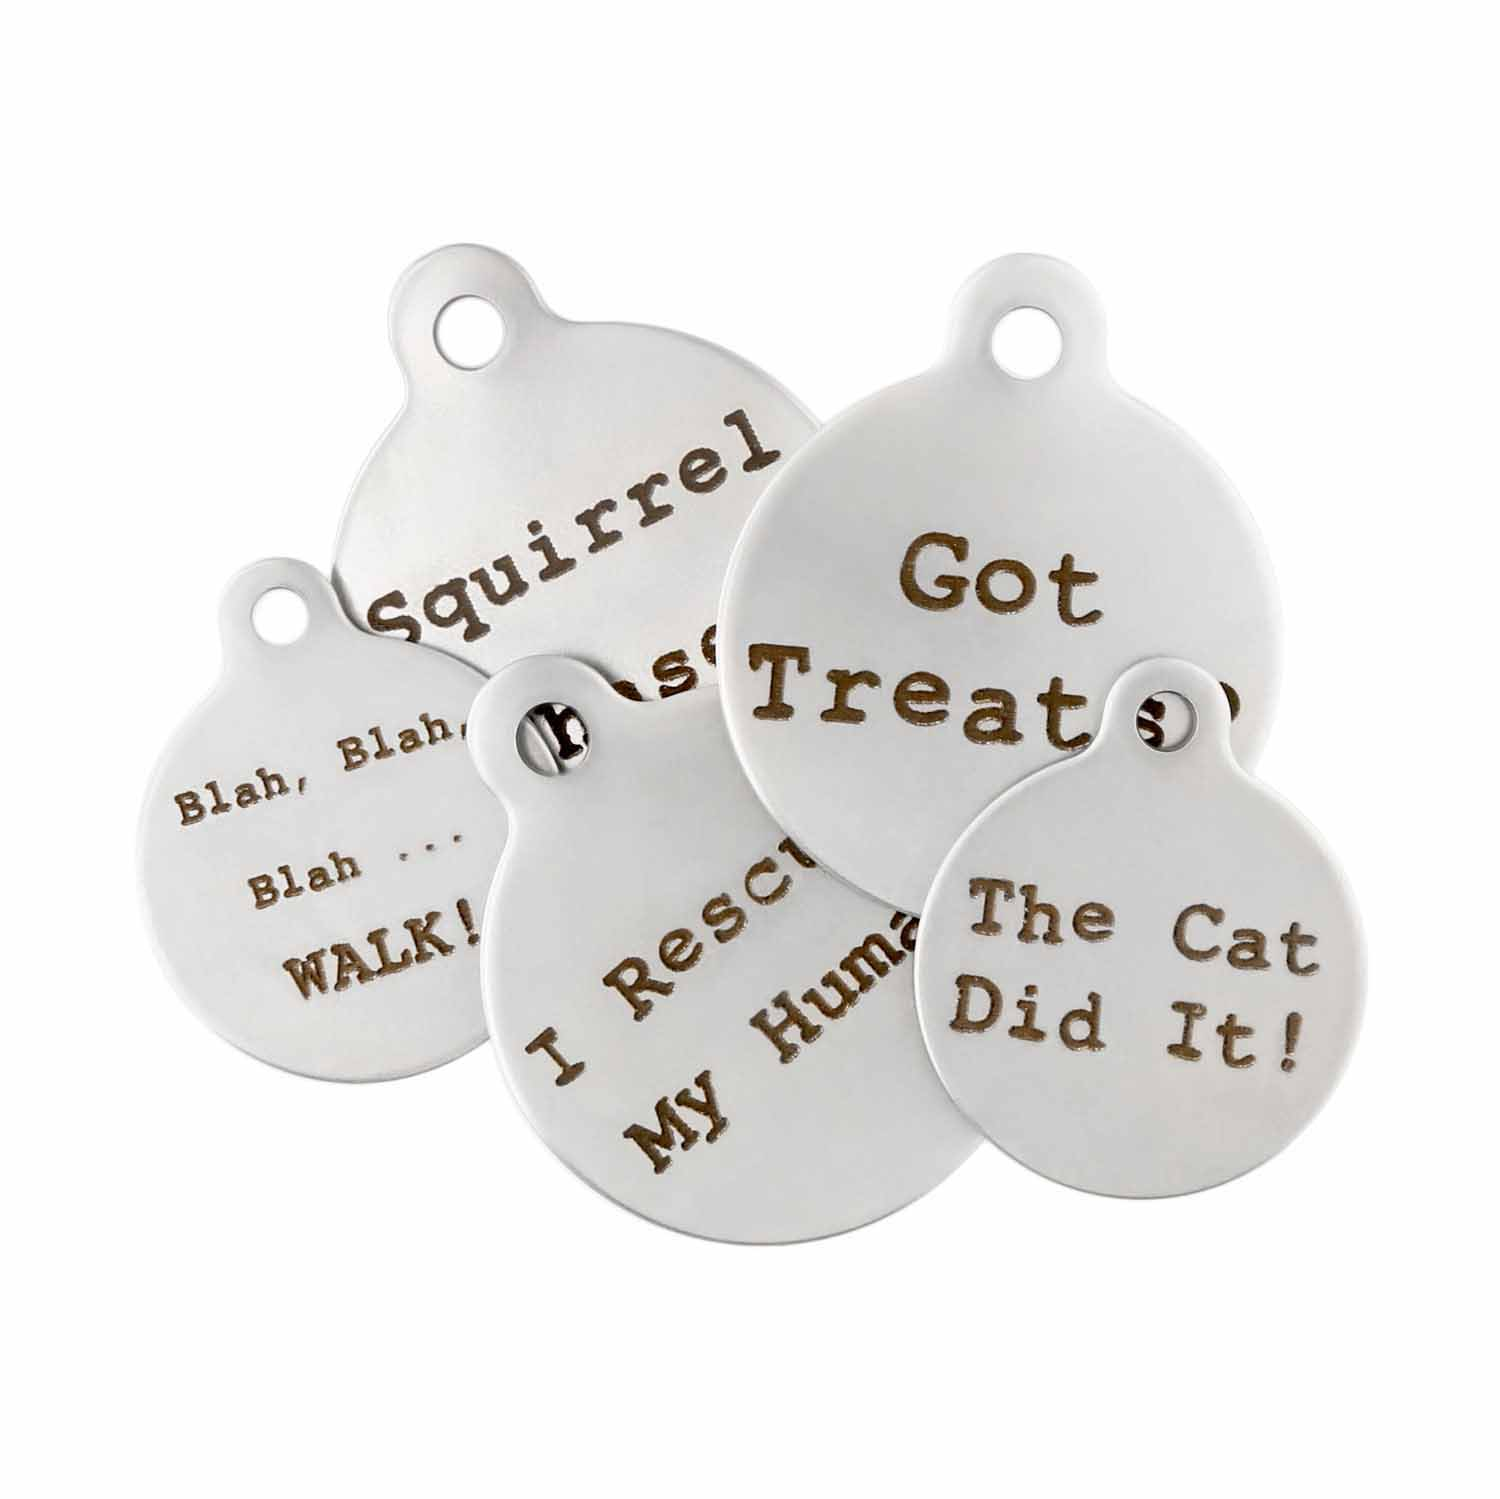 DogSpeak Pet ID Tags - Group Photo